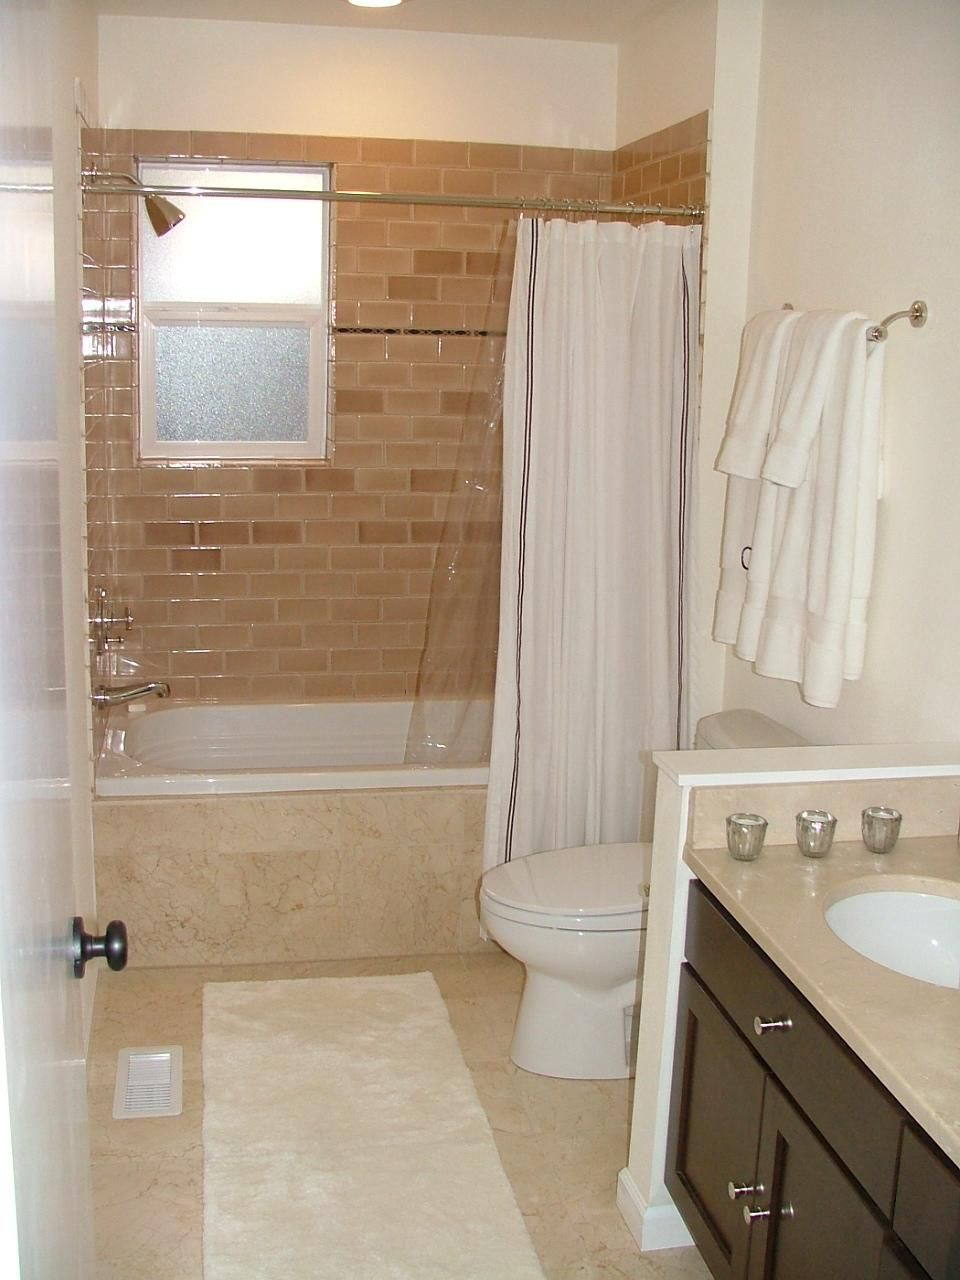 Small Bathrooms Are Less Expensive To Remodel Compared With A - White bath runner for bathroom decorating ideas